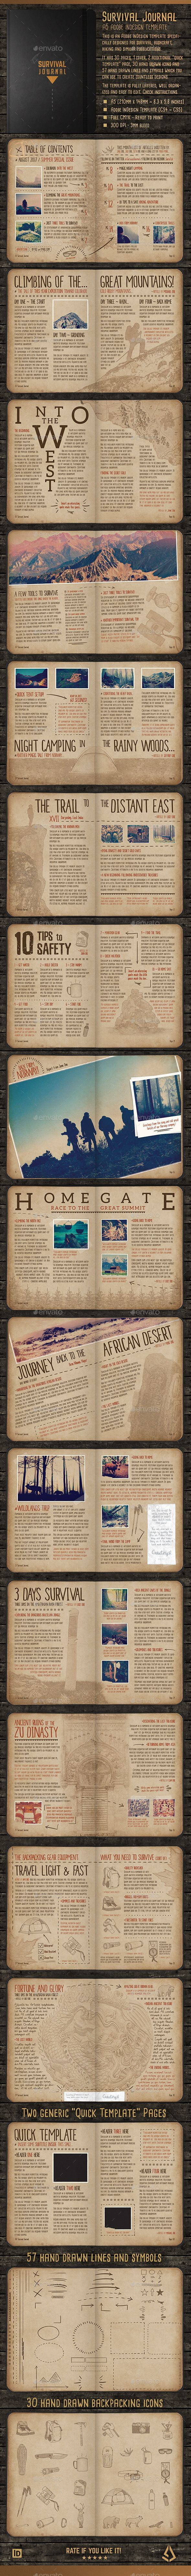 Survival Journal Template - A5 InDesign Outdoor Diary - Magazines ...